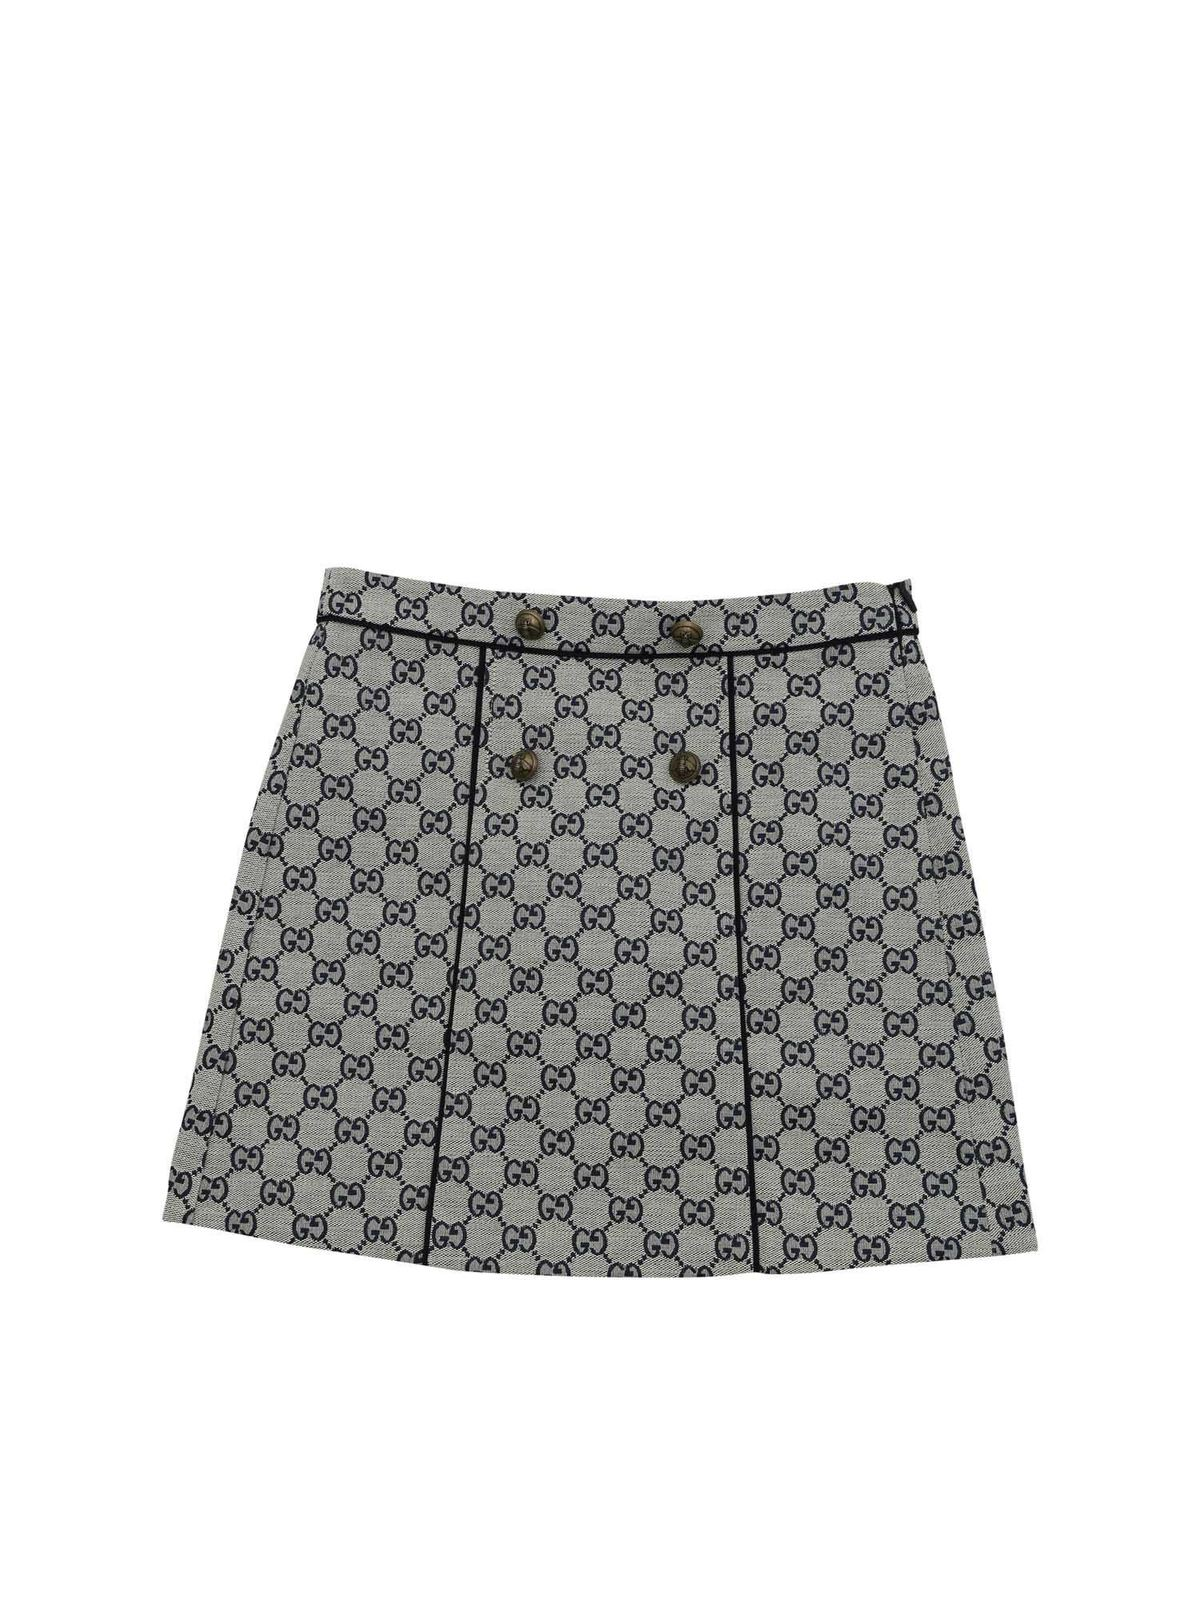 GUCCI GG FABRIC SKIRT IN IVORY AND BLUE COLOR